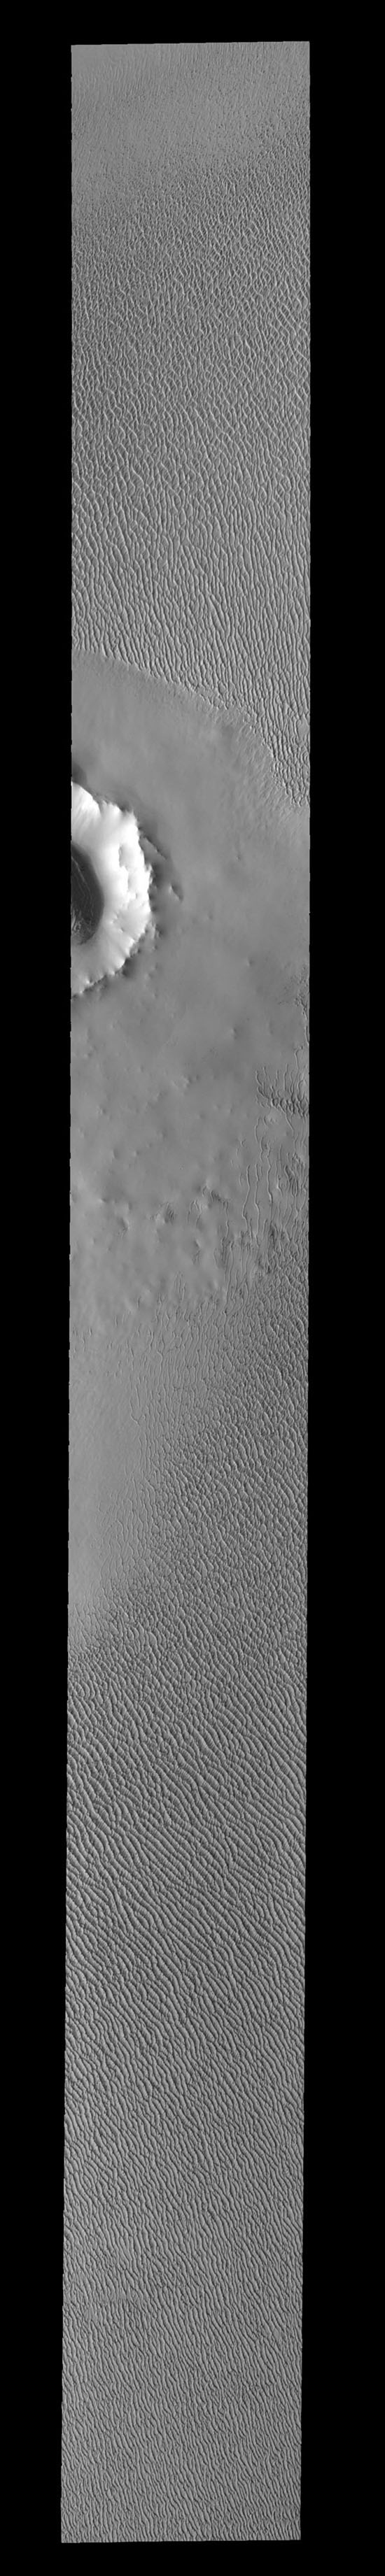 This image from NASA's 2001 Mars Odyssey spacecraft shows sand dunes located near the north polar cap. It is springtime and the dunes will darken with time as the winter frost sublimates in the sun.